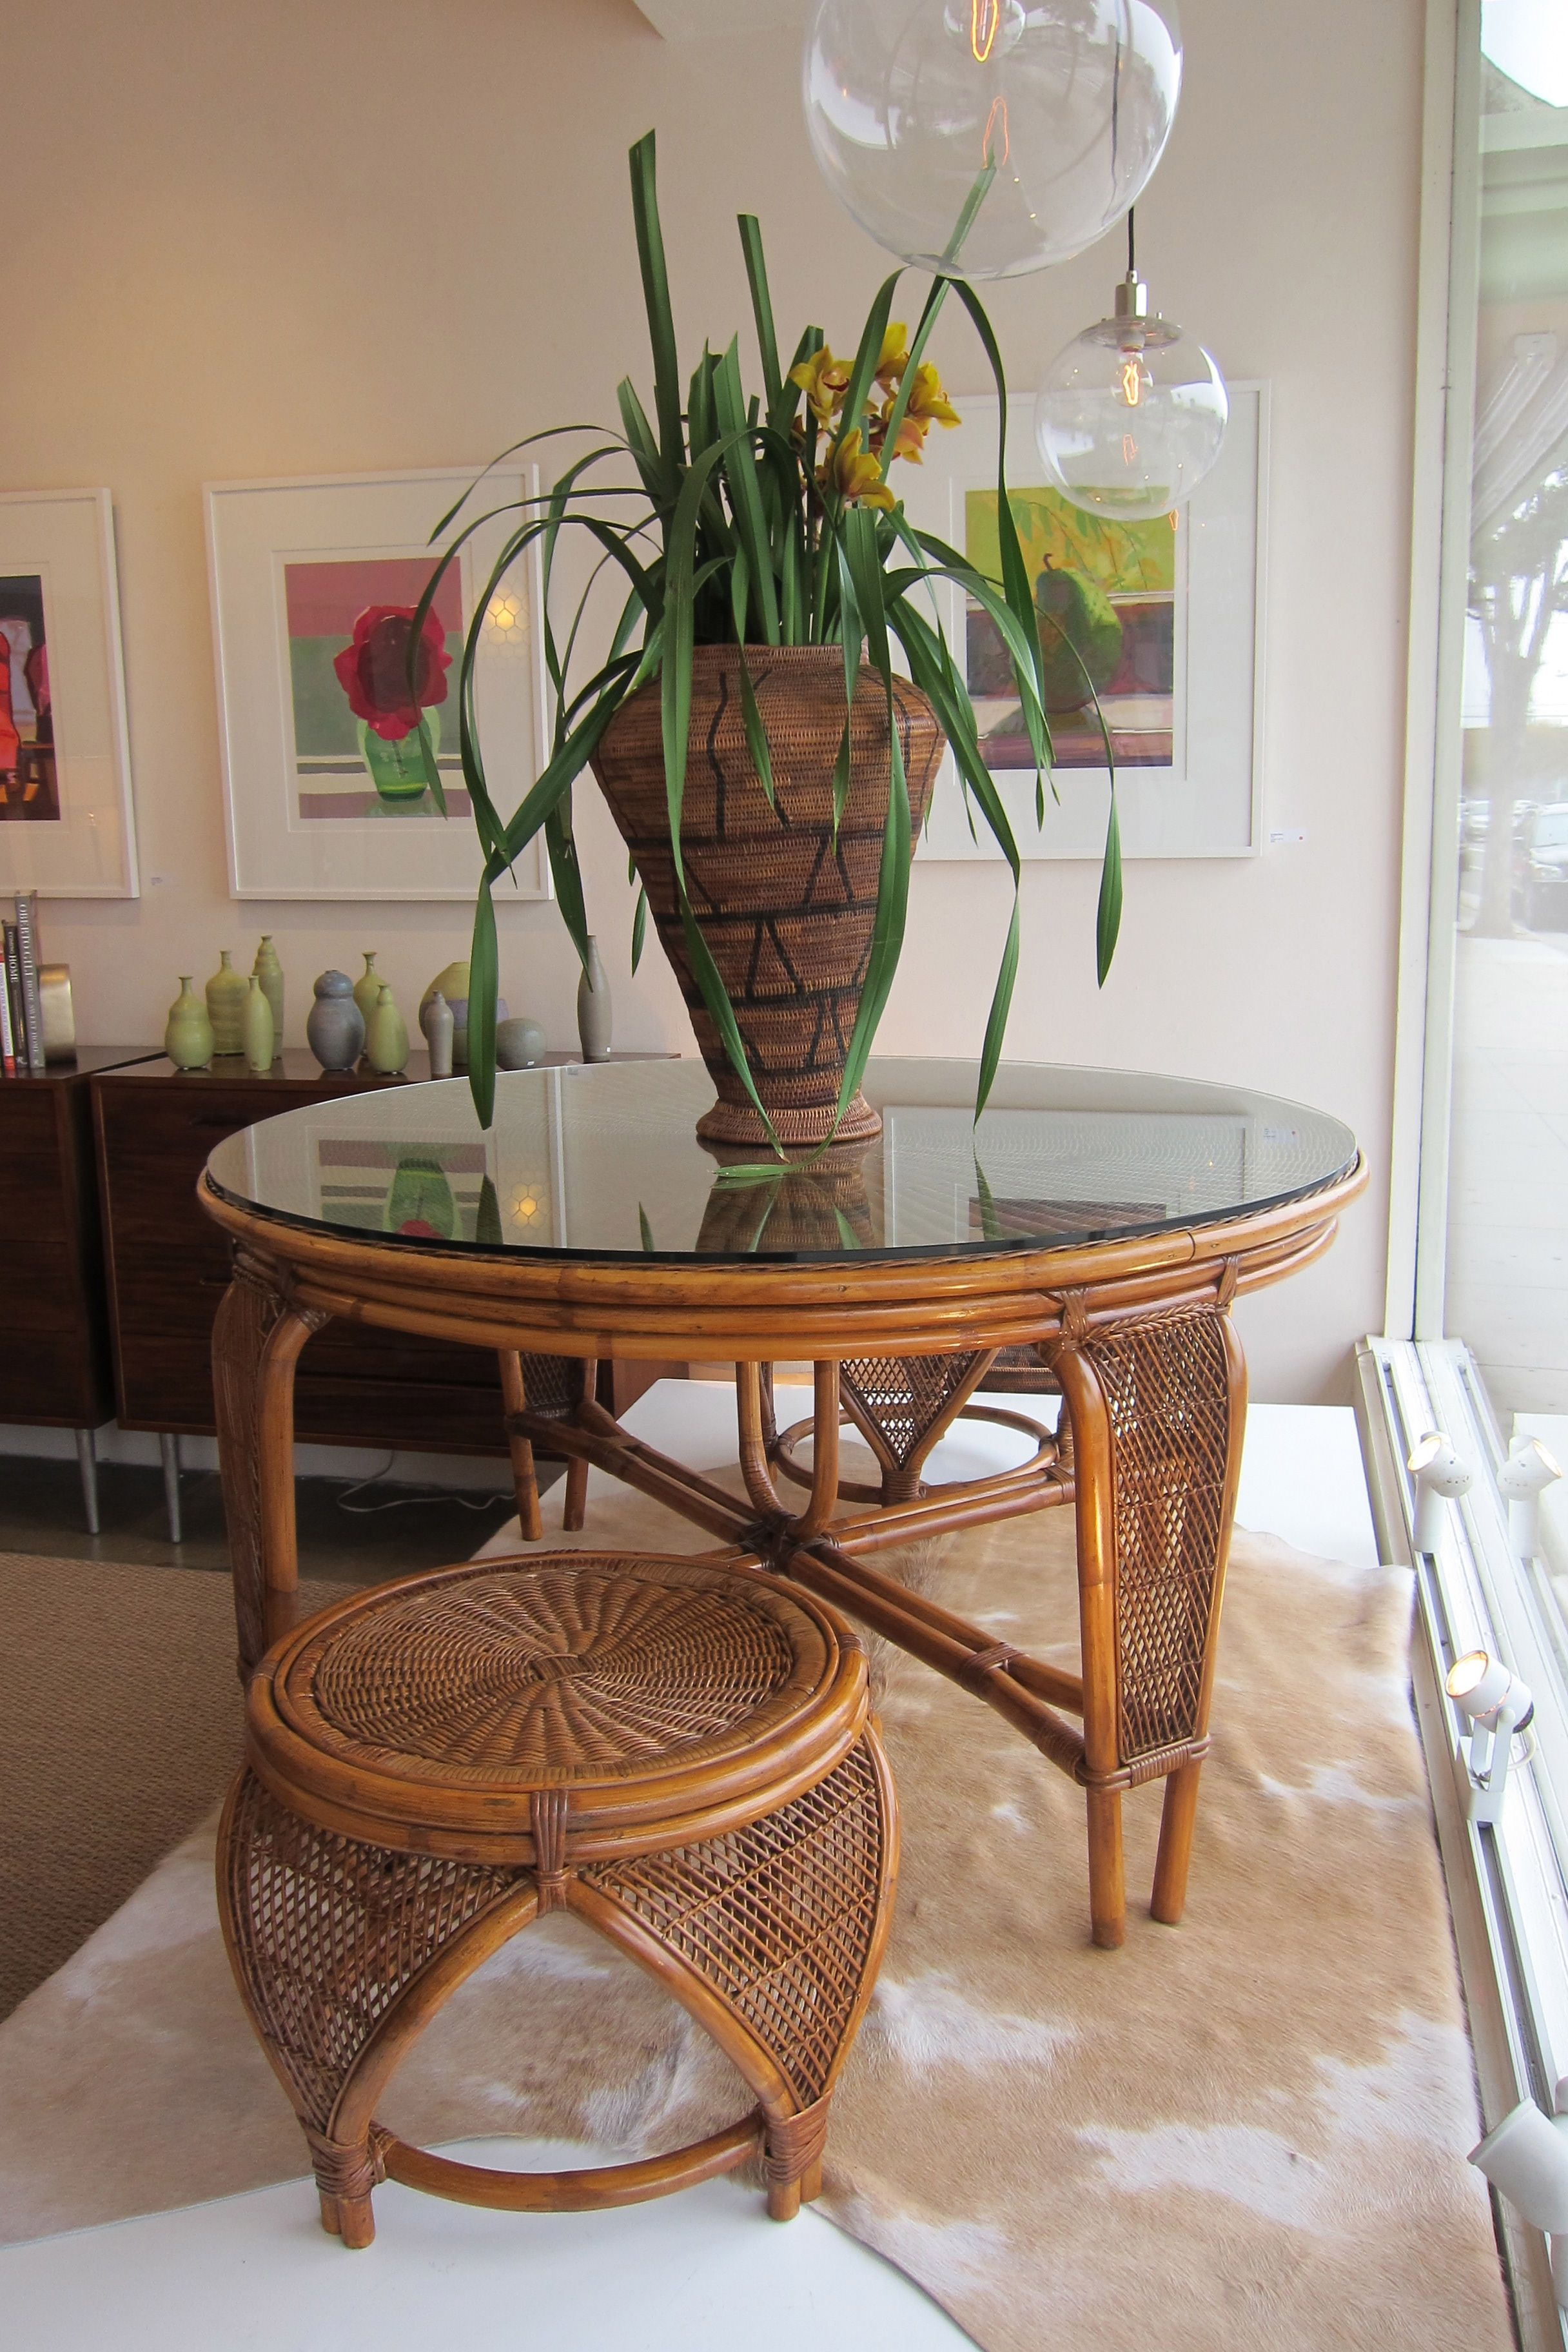 Vintage Bamboo And Rattan Table And Set Of 4 Stools First Look New At Rumba Tropical Furniture Bamboo Furniture Furniture